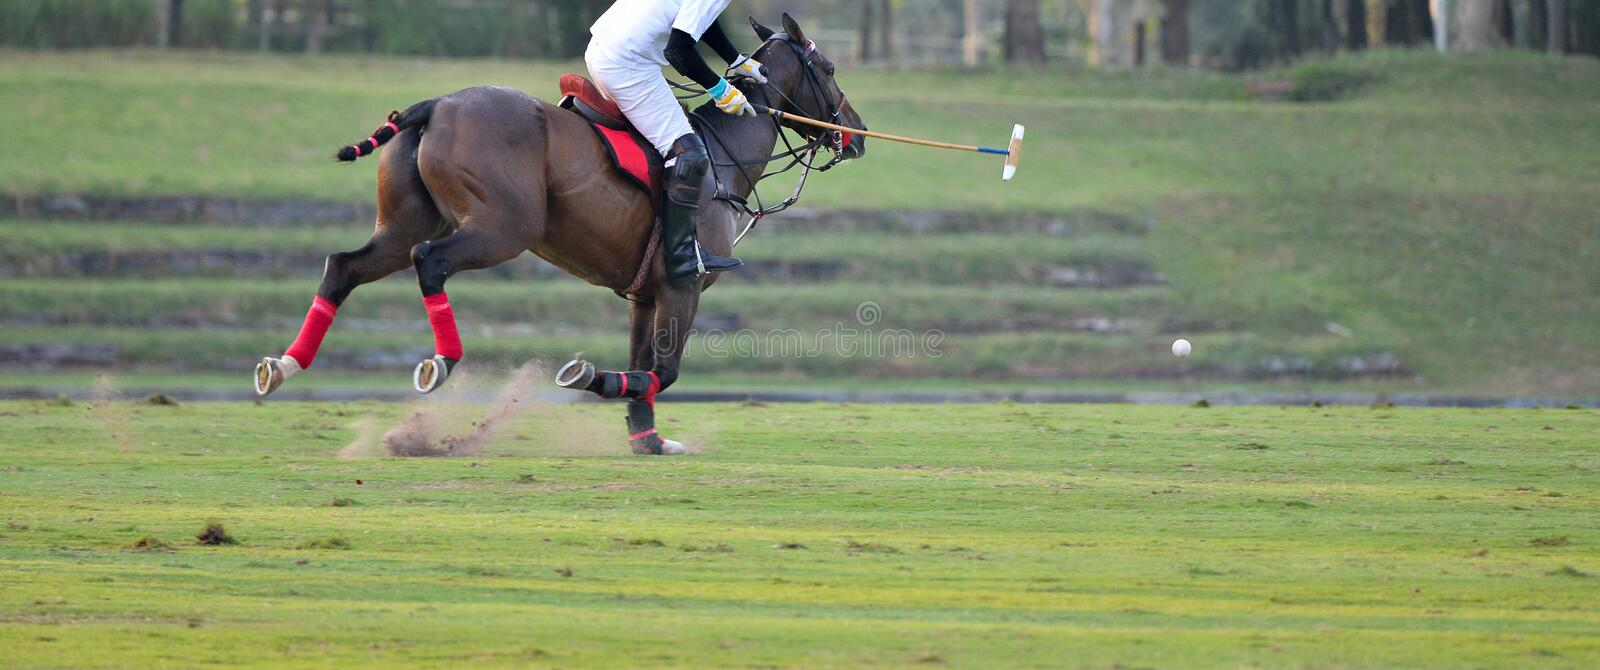 Horse Polo Sport Run In Macth. The Horse Polo Sport Run In Macth royalty free stock images